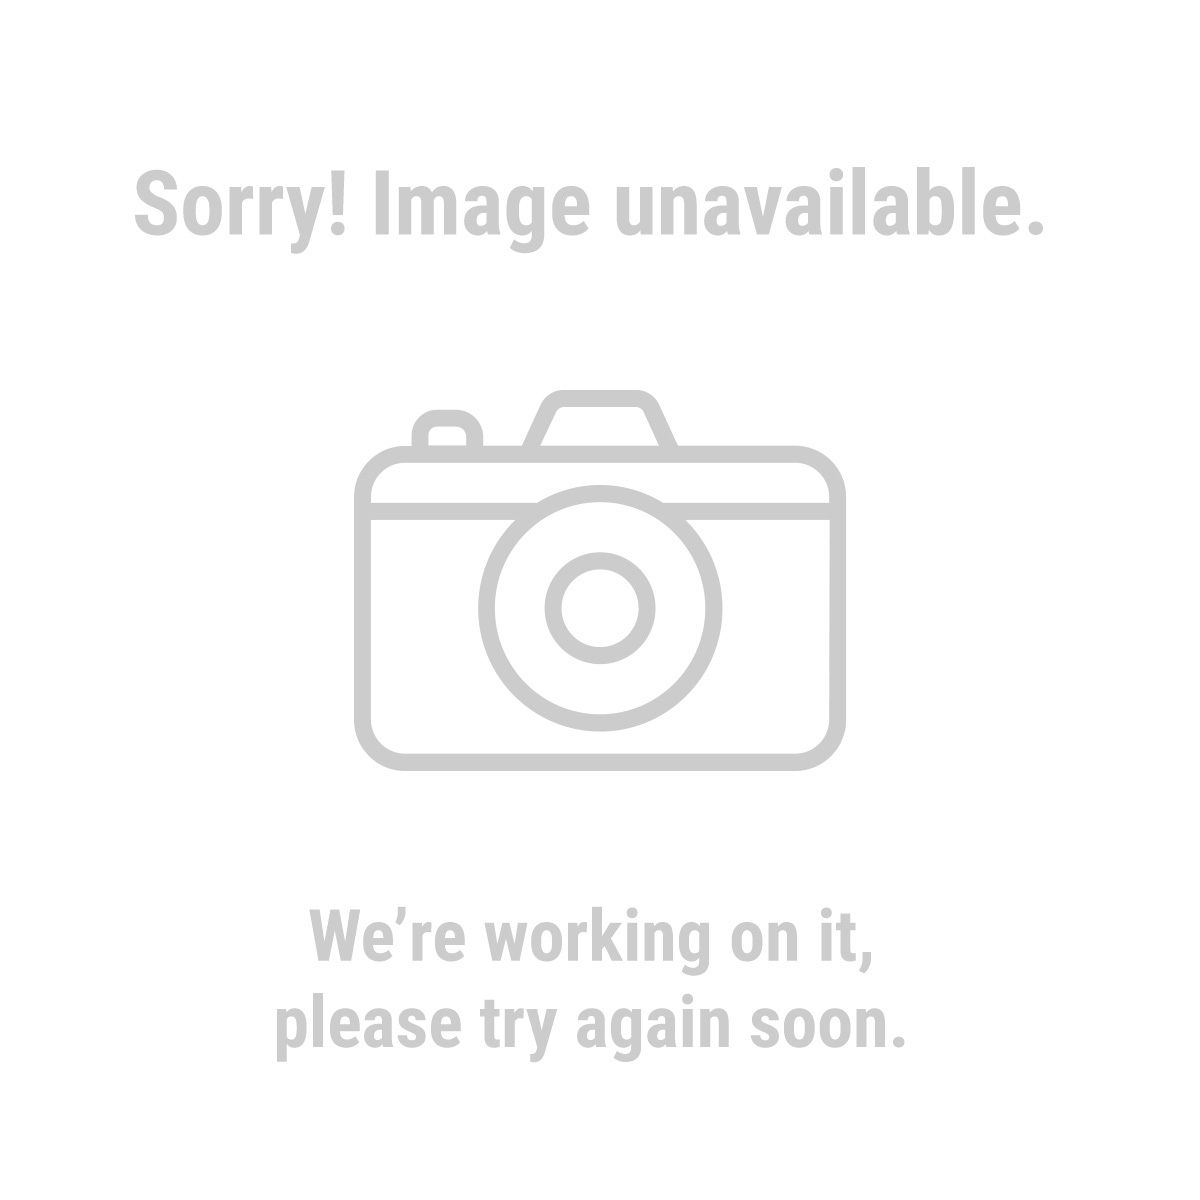 Pittsburgh 61877 4-in-1 Aluminum Rafter Angle Square